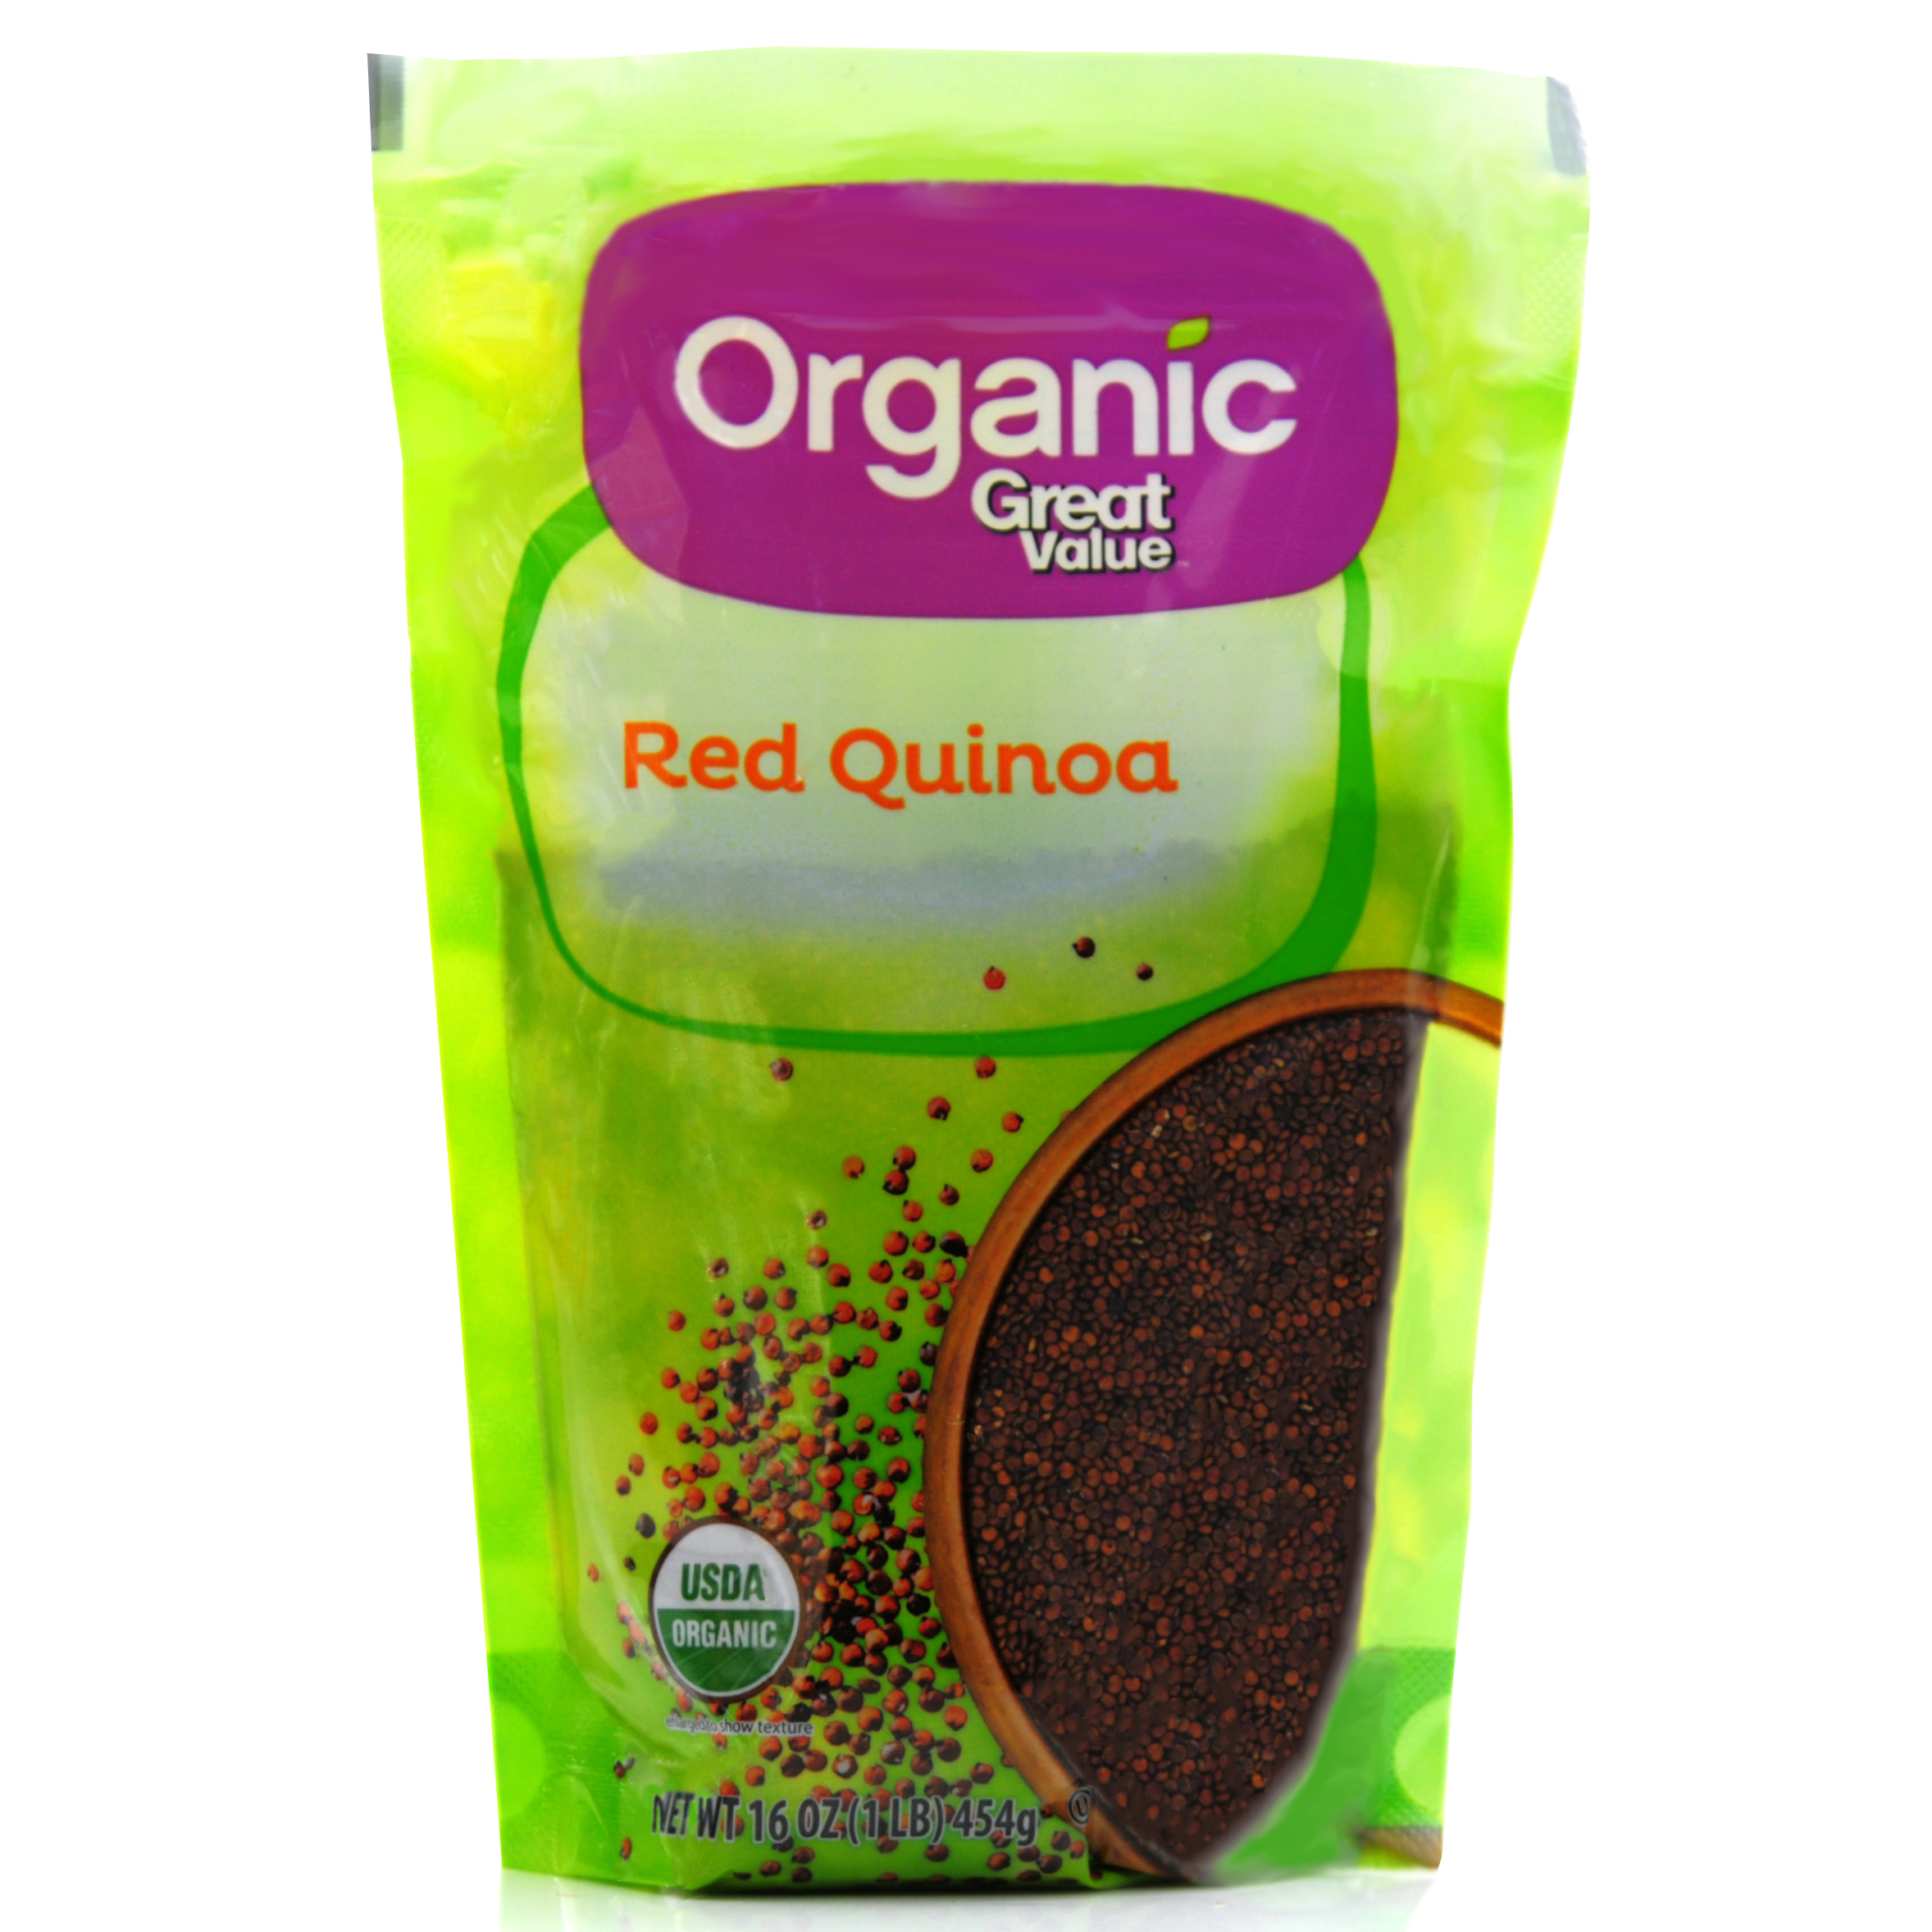 Great Value Organic Red Quinoa, 16 oz